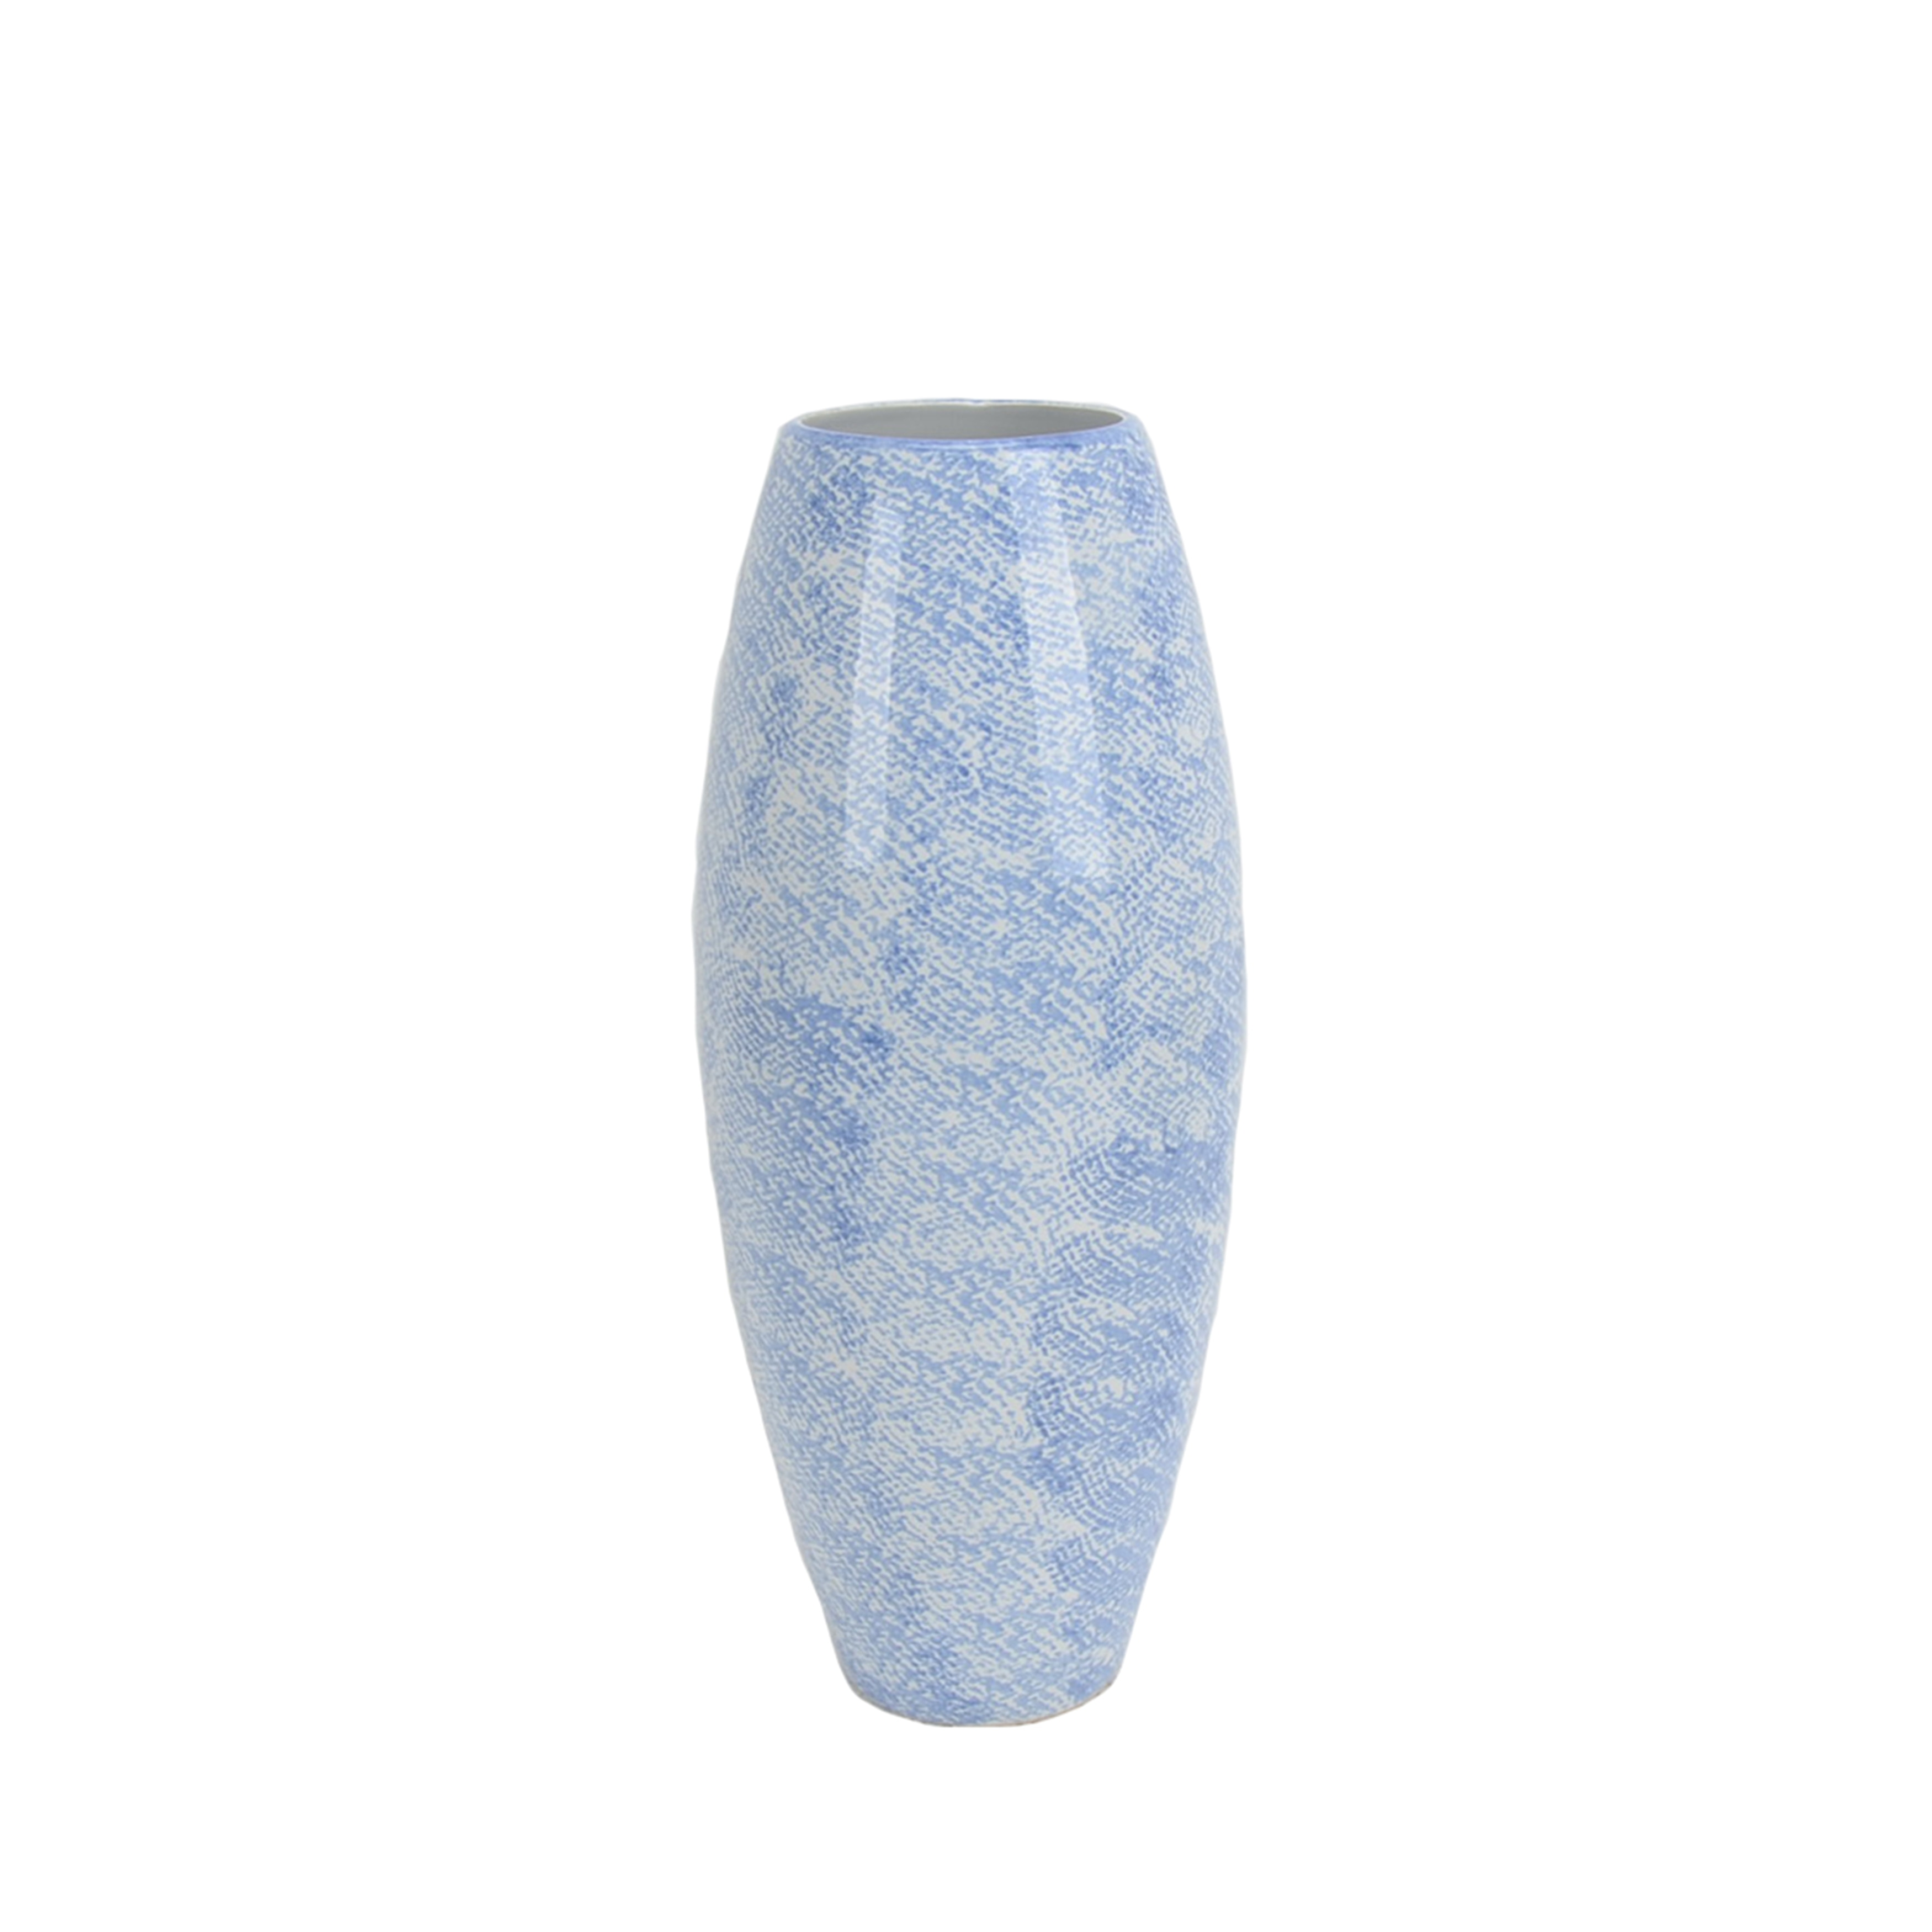 Ceramic Tapered Vase with Texture Design, Blue and White